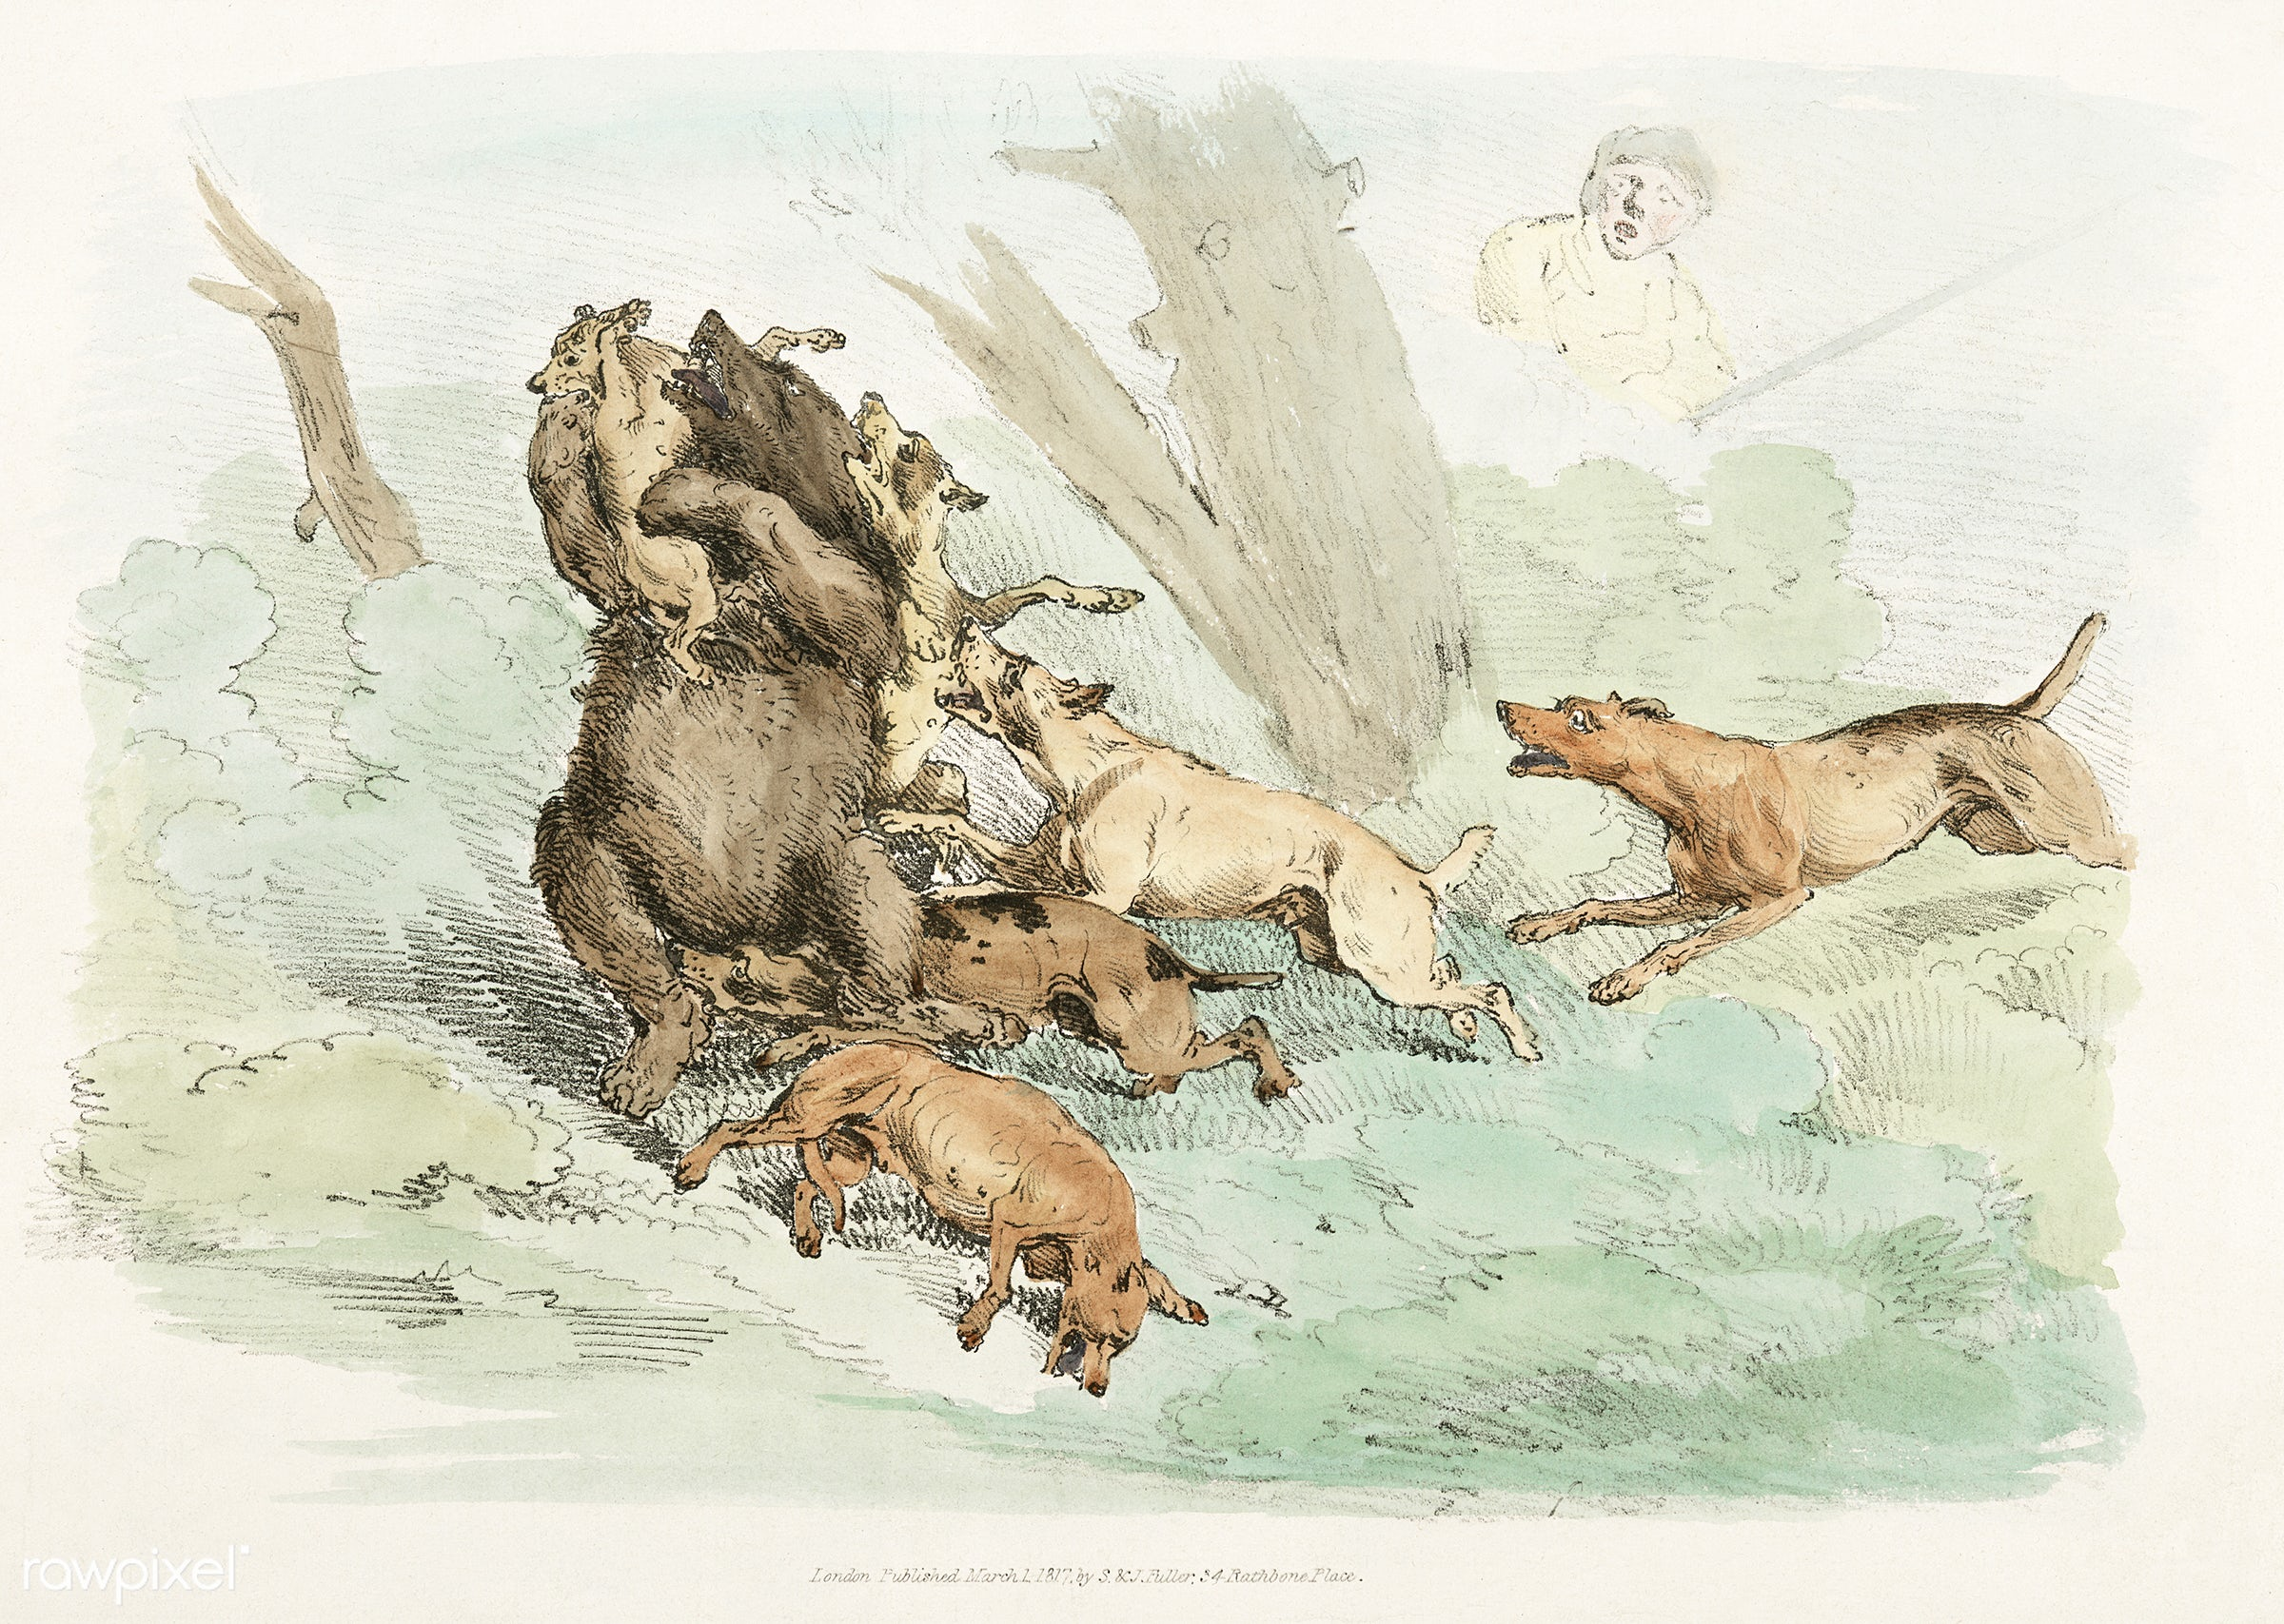 Illustration of hunting dogs attacking a bear from Sporting Sketches (1817-1818) by Henry Alken (1784-1851). - animal,...